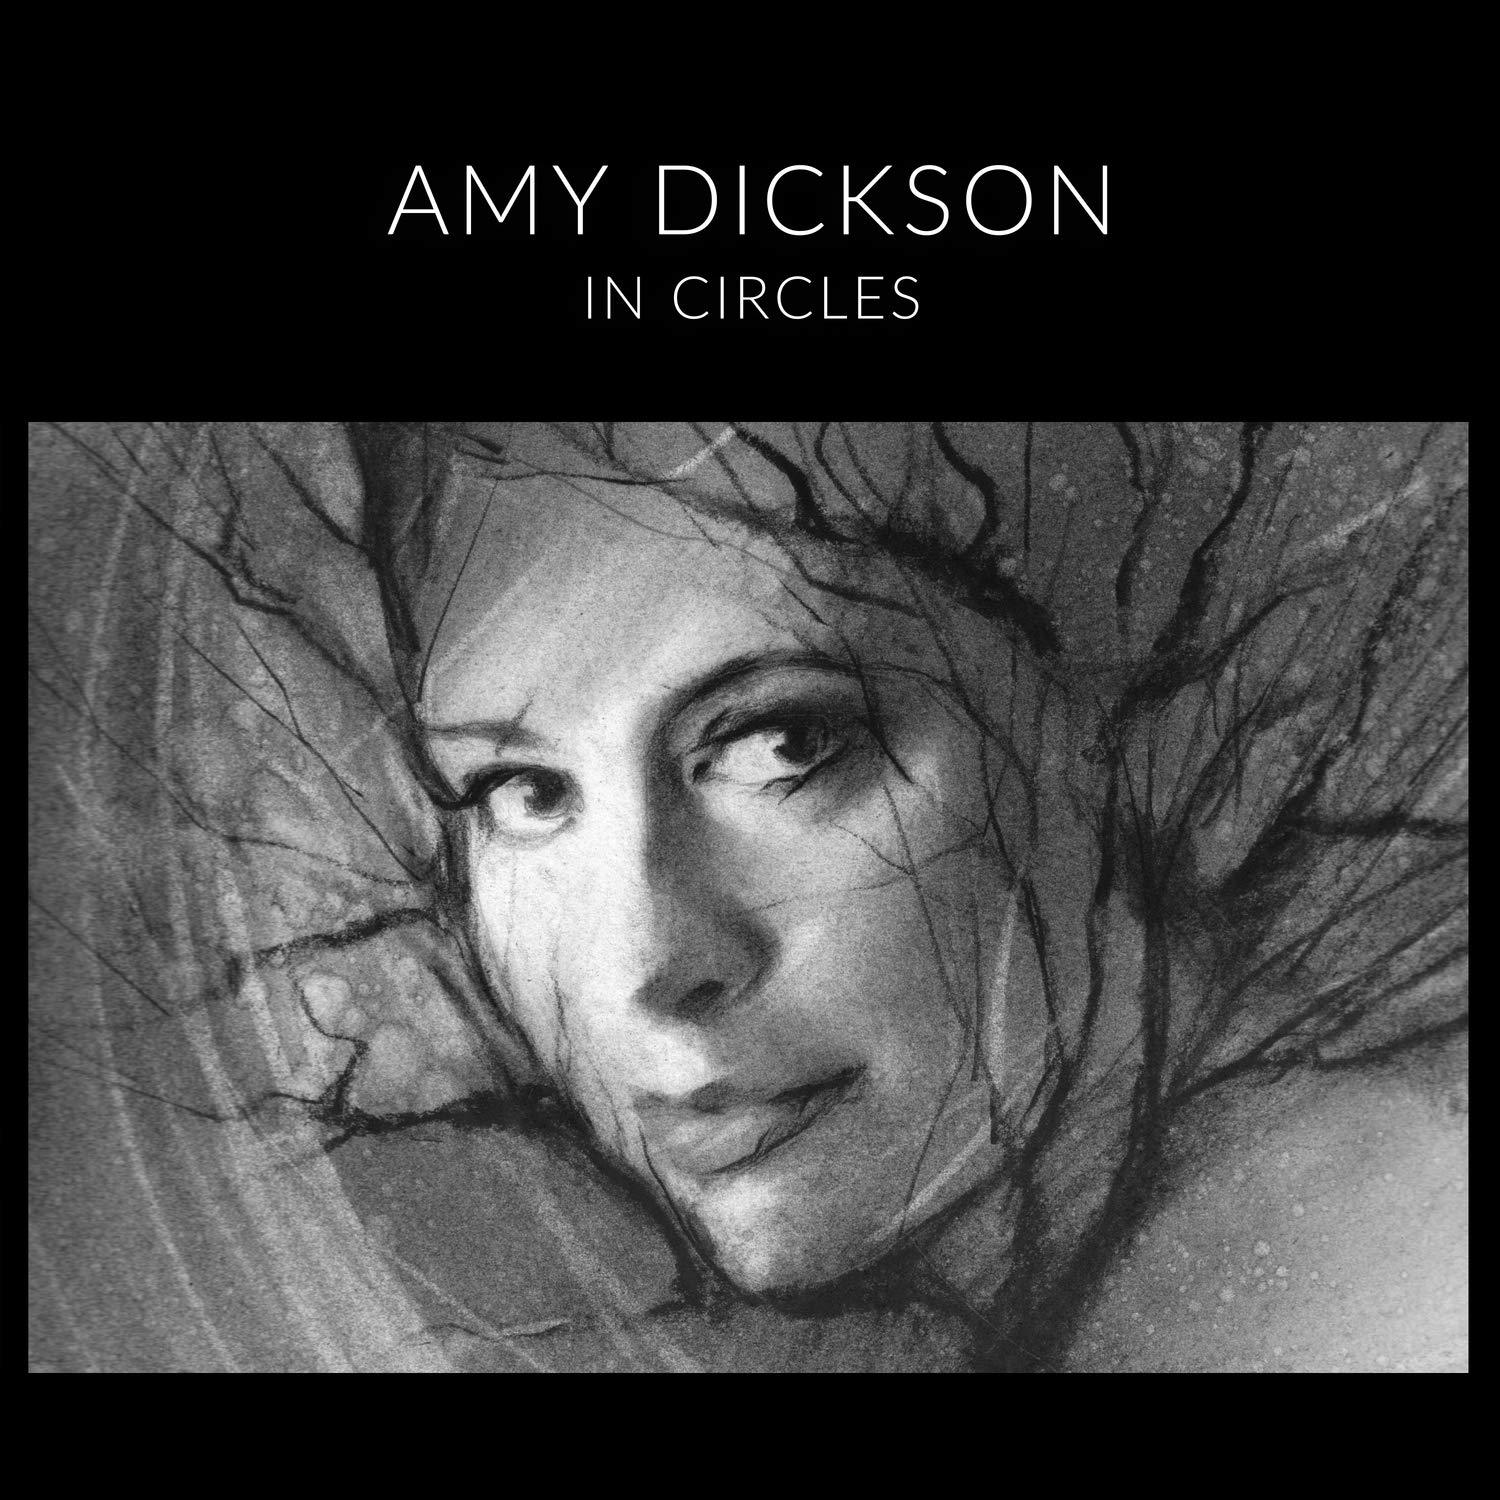 DICKSON, AMY: In Circles